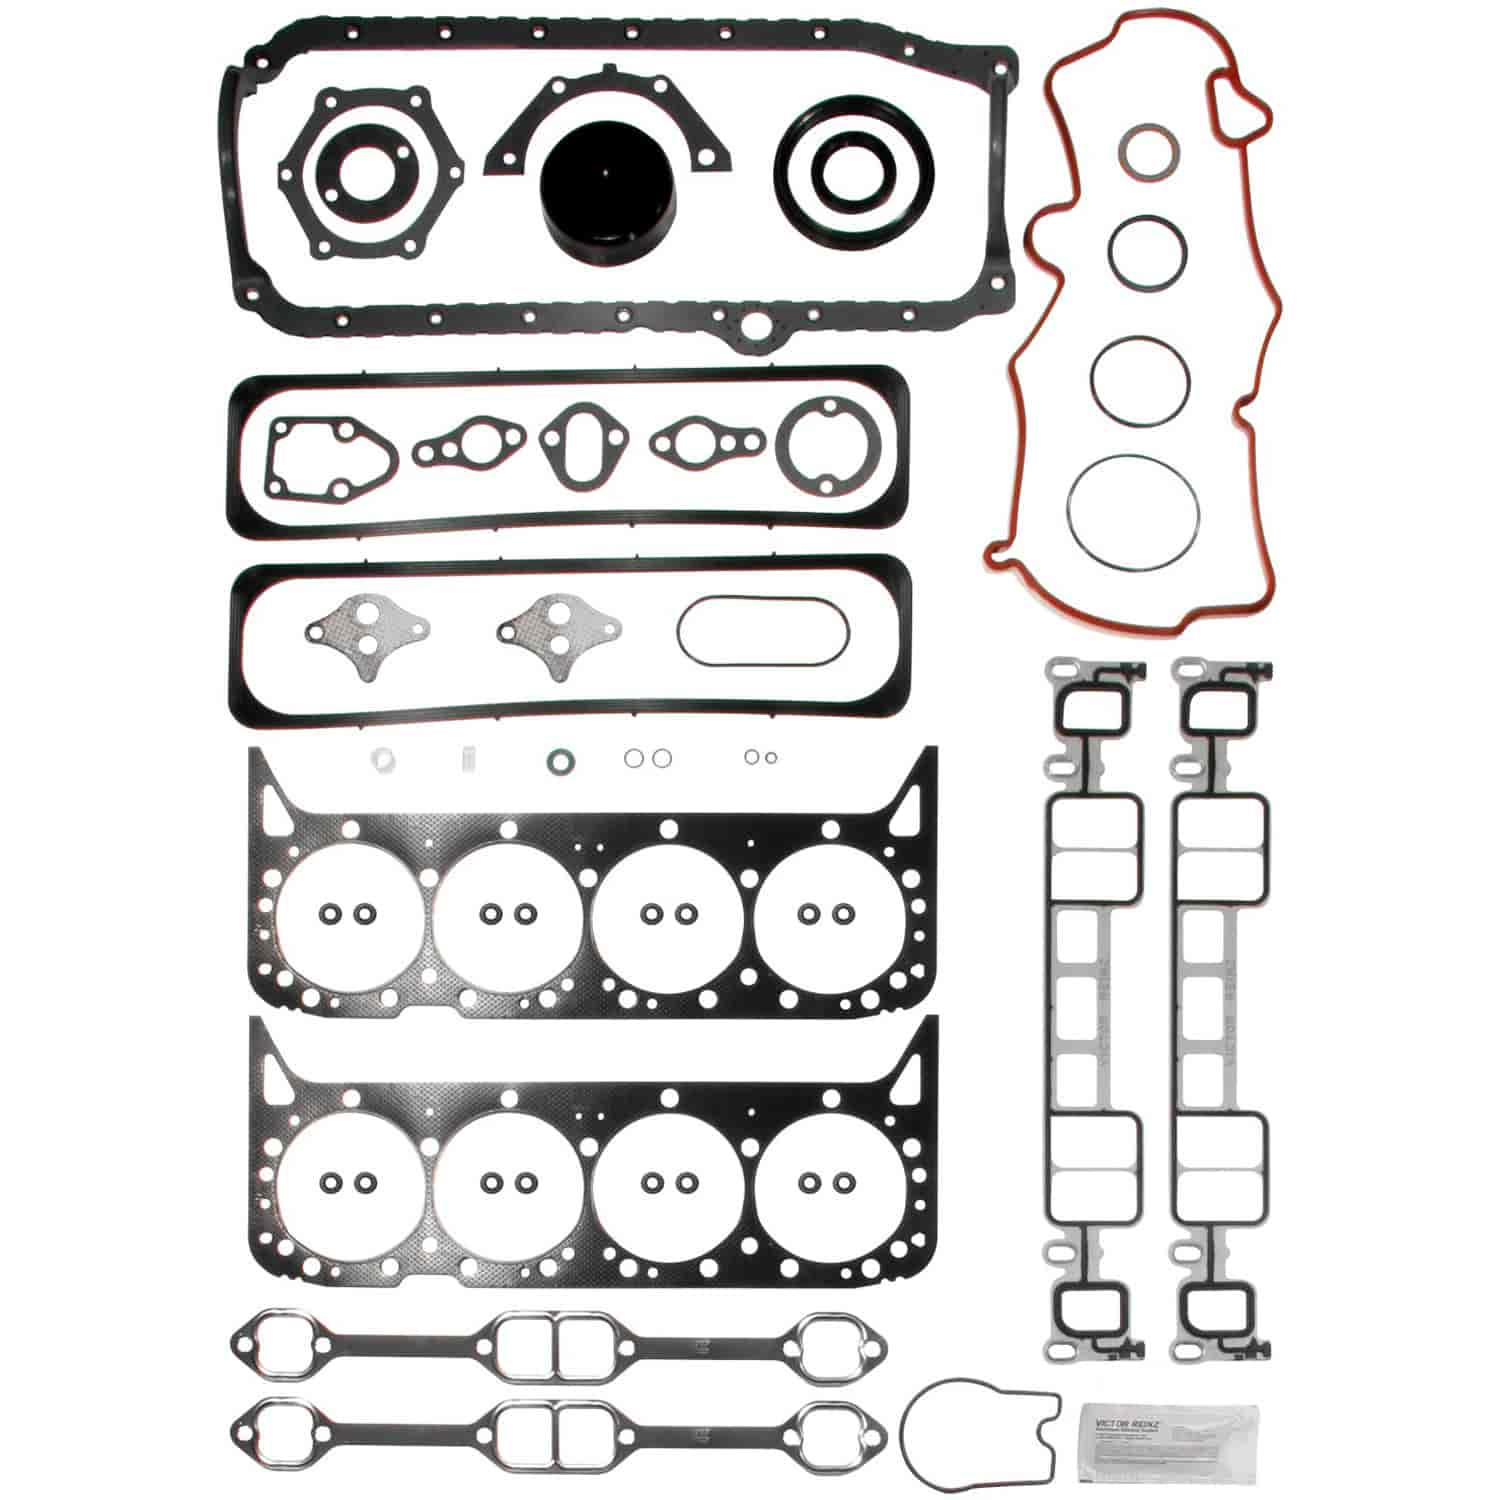 Clevite Mahle Engine Kit Gasket Set Small Block Chevy Vortec 350ci 5 7l